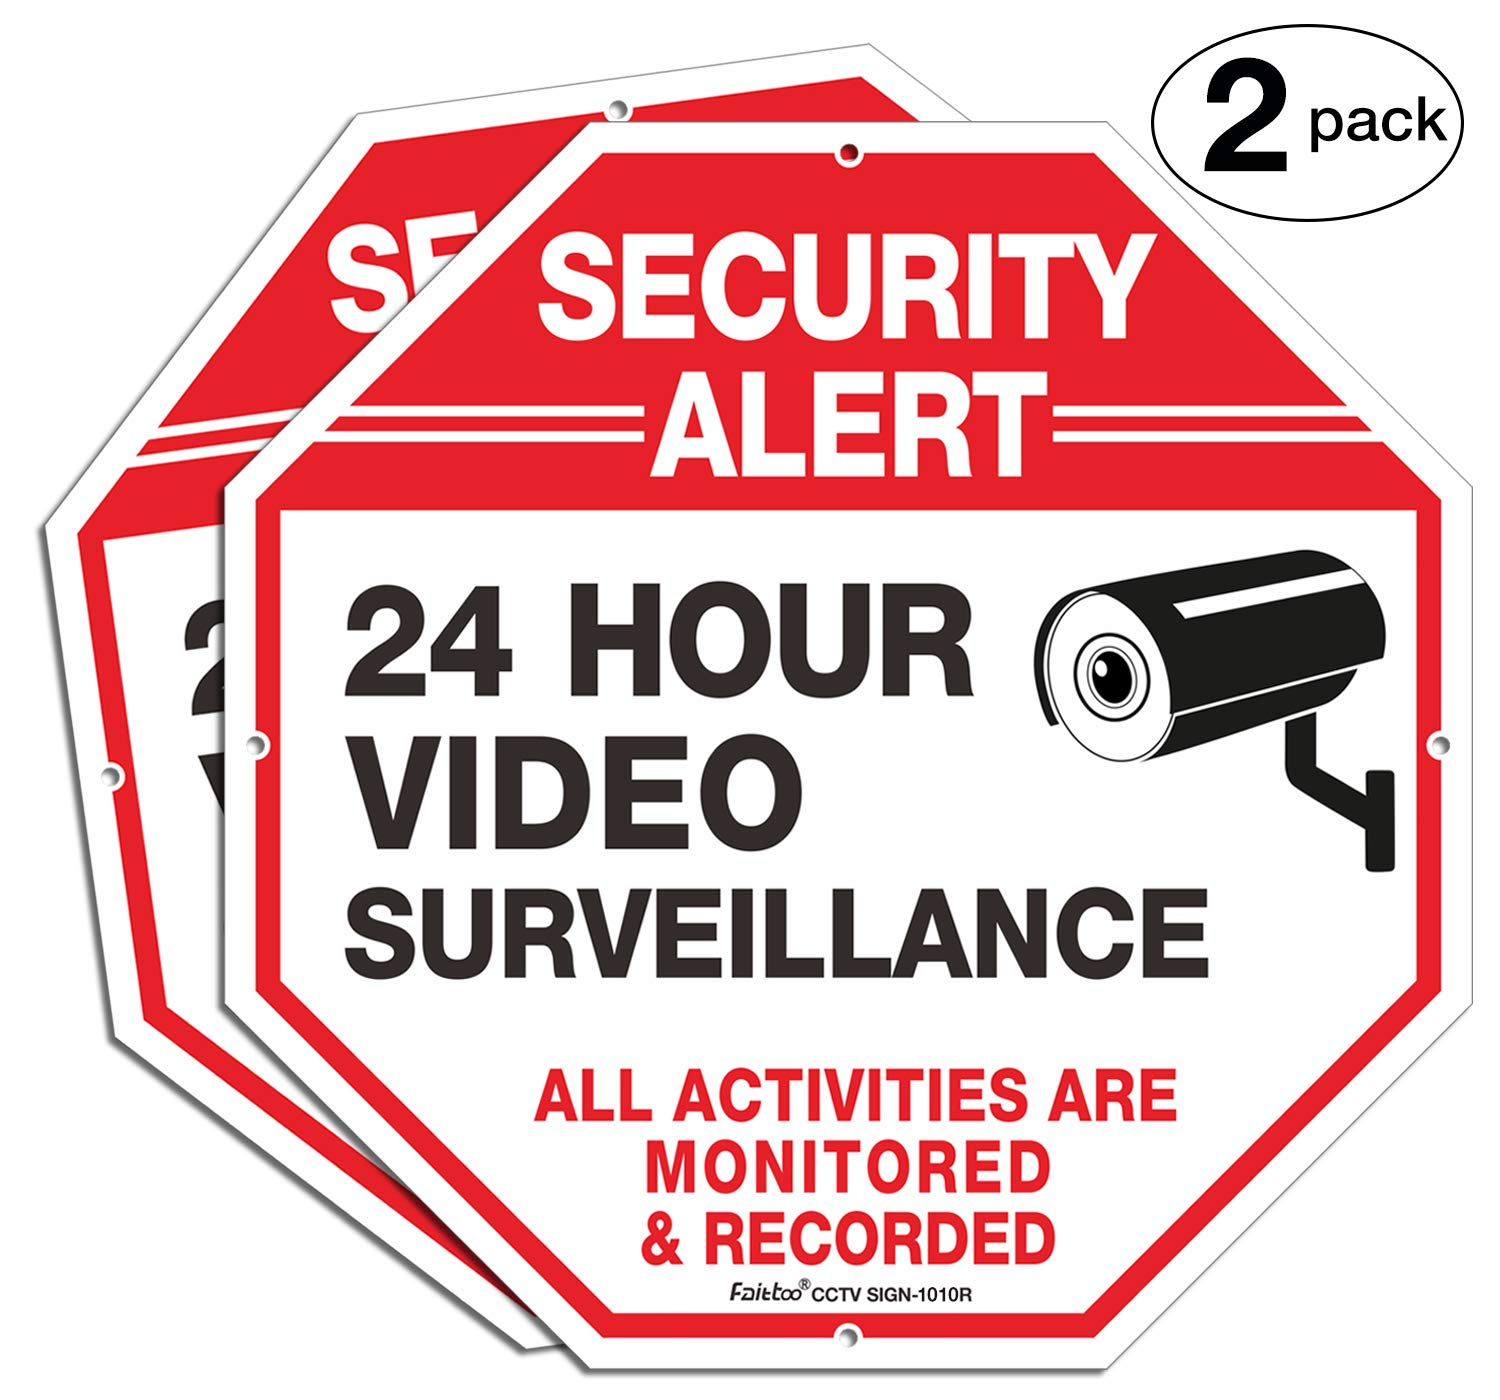 "2-Pack Video Surveillance Sign, 10"" x 10"" Rust Free .040 Aluminum Security Warning Reflective Metal Signs, Indoor Or Outdoor Use for Home Business CCTV Security Camera, UV Protected & Waterproof,Red"